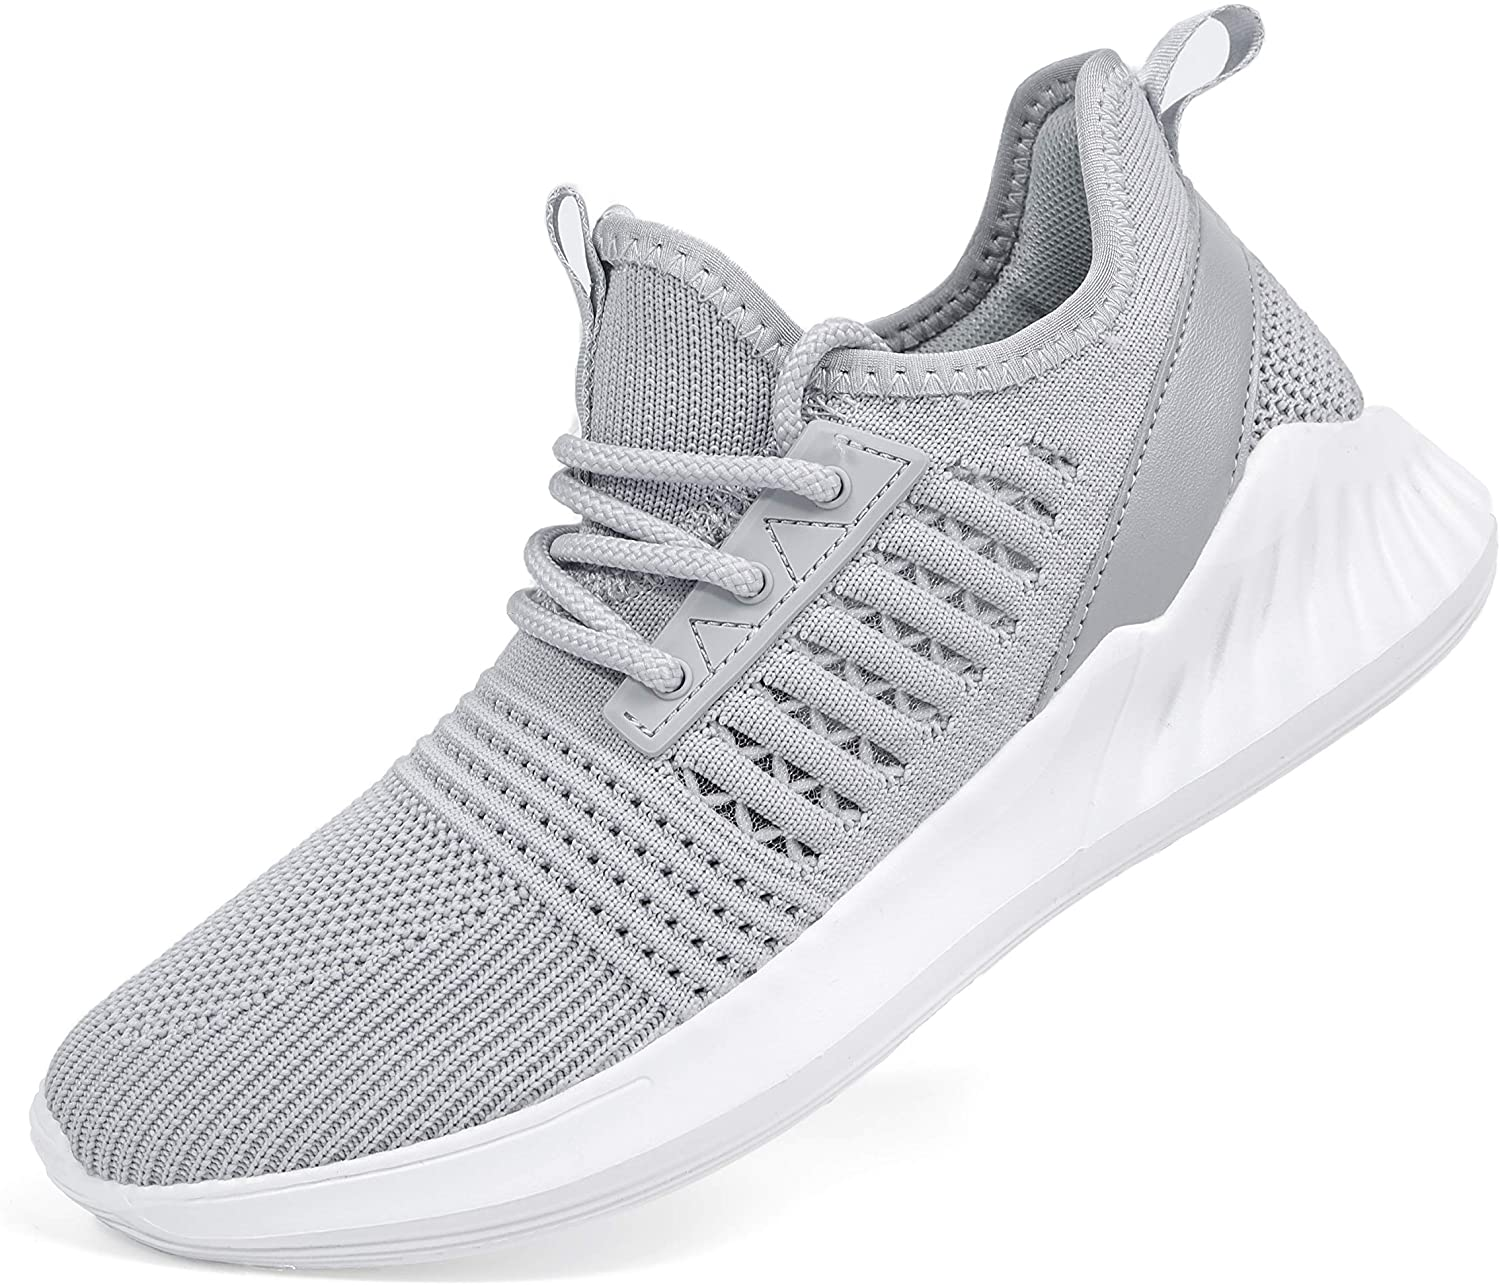 SDolphin Walking Shoes for Women - Ultra Lightweight Breathable Mesh Athletic Sneakers for Gym Jogging Travel Work